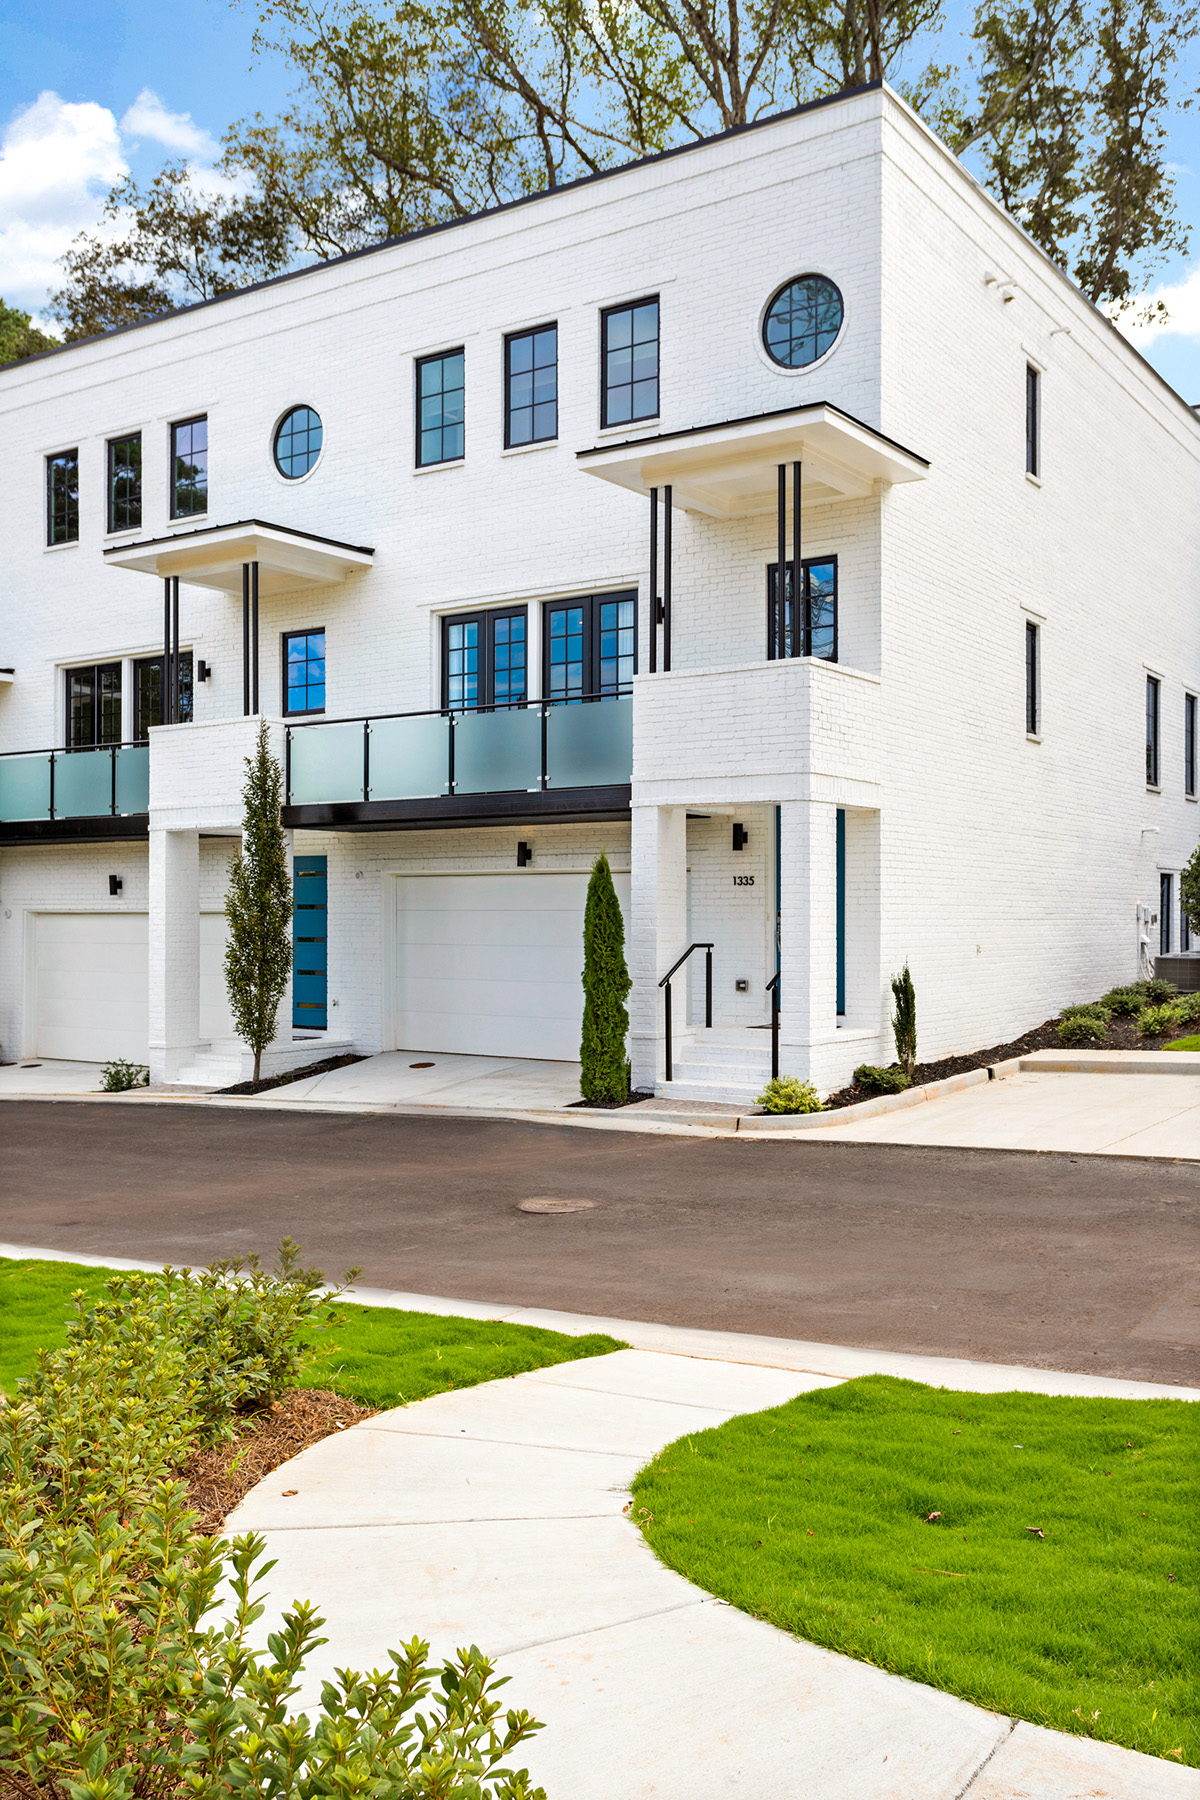 Art Moderne Inspired Living In A Contemporary Setting 1517 Briarcliff Road 9 Atlanta, Georgia 30306 États-Unis